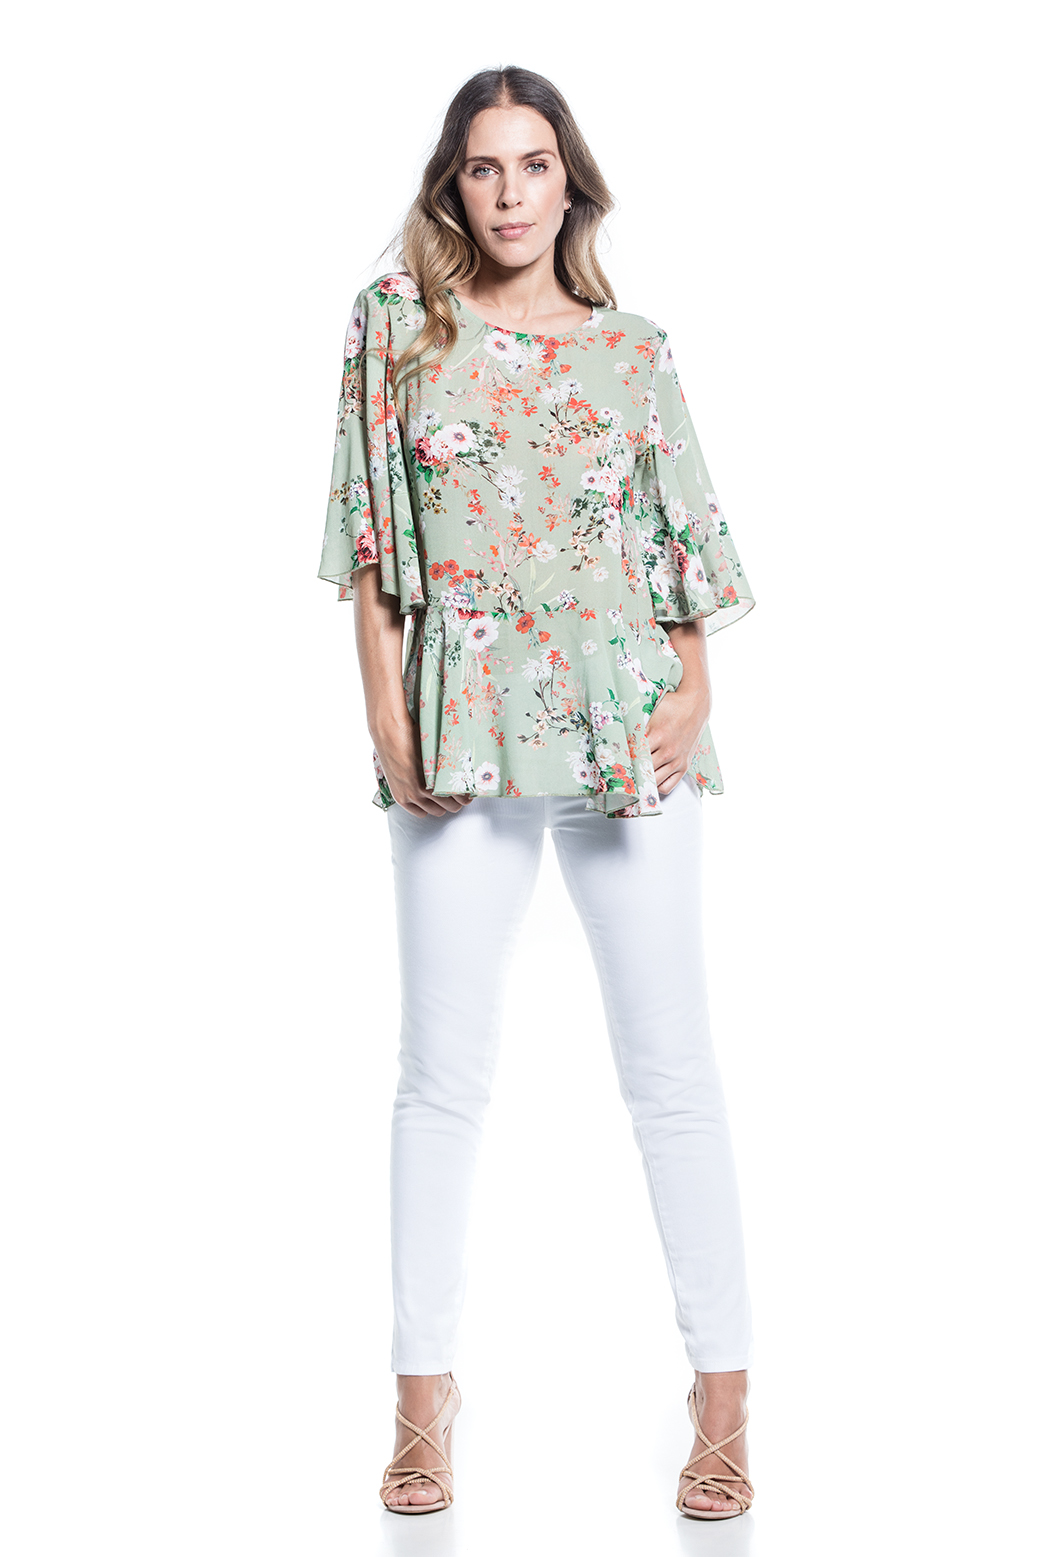 Printed t-shirt with loose sleeves